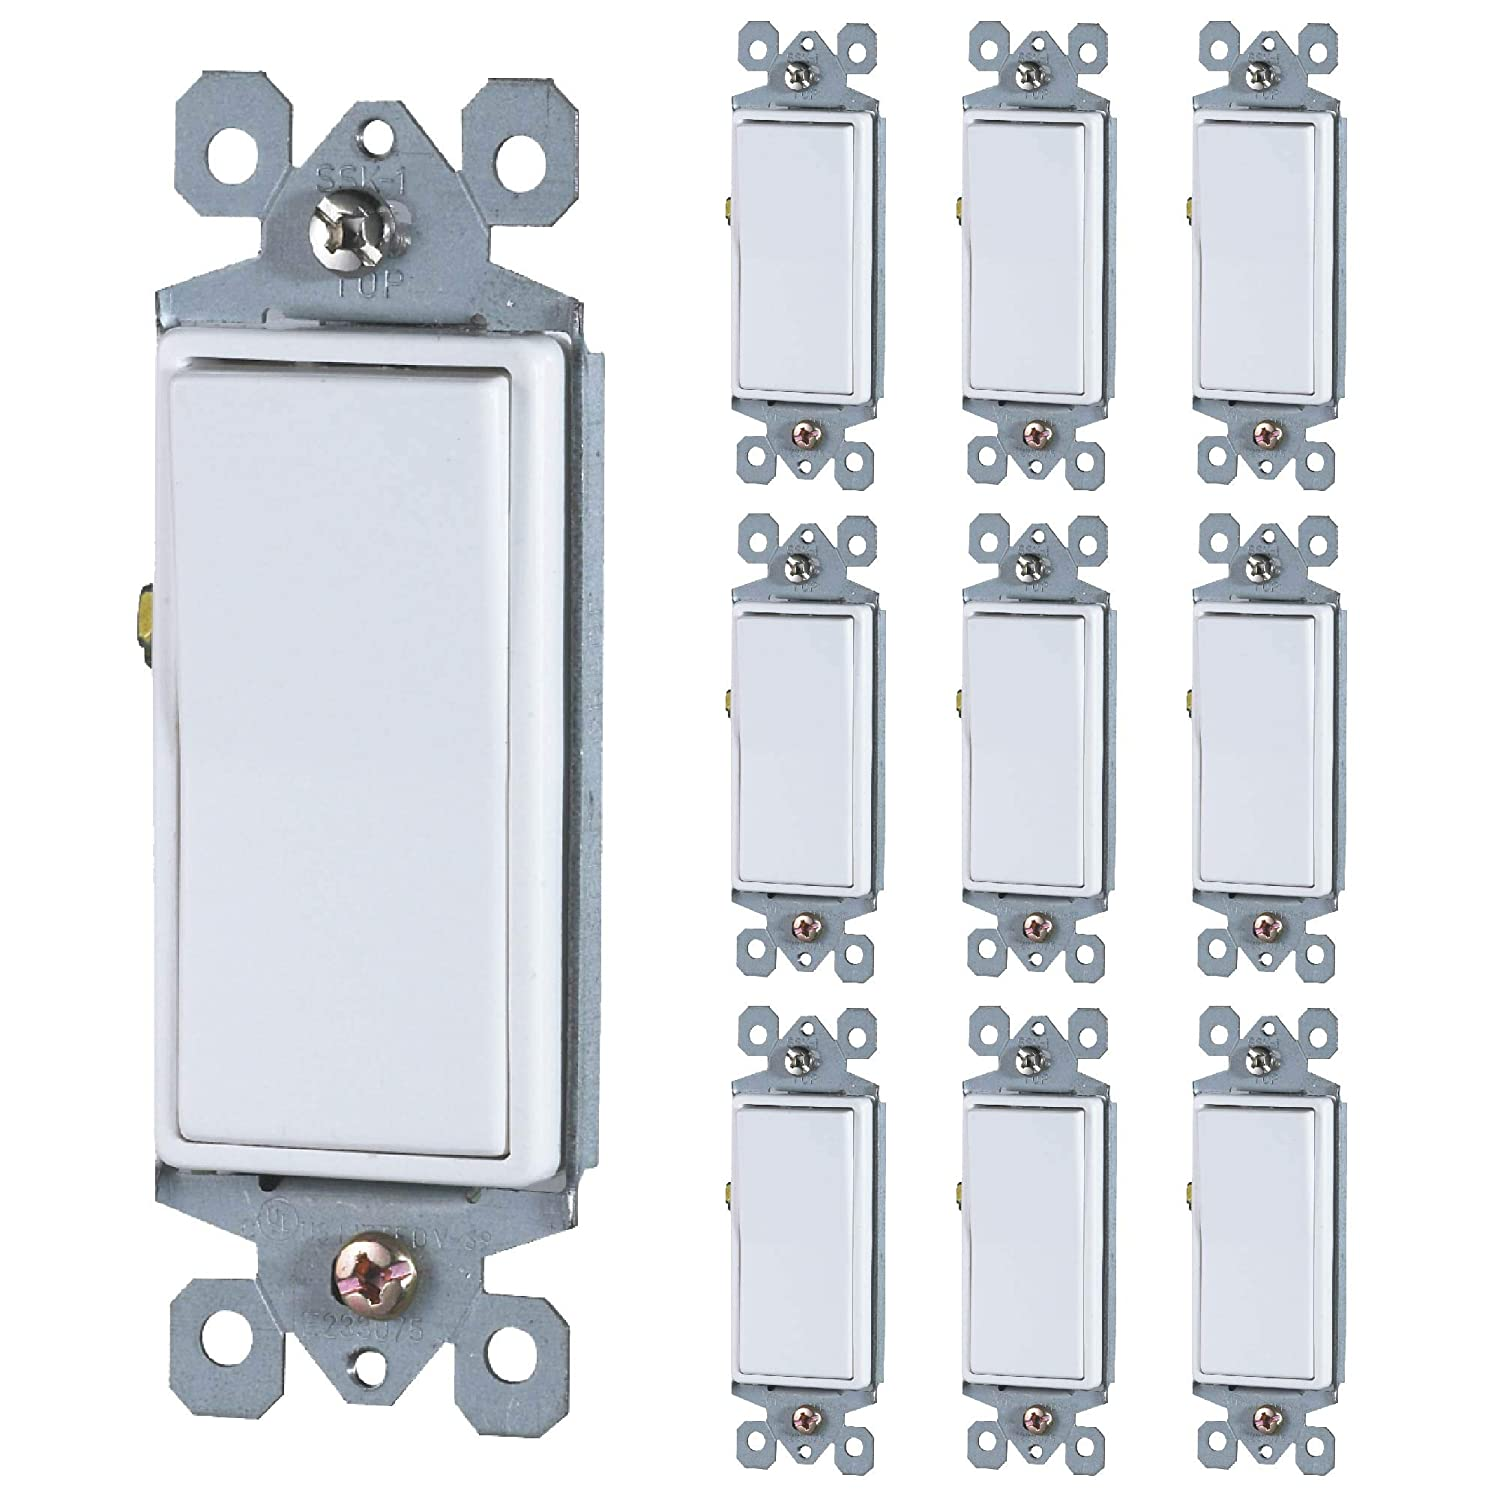 Faith [10-Pack] Single-Pole Decorator Paddle Wall Light Switch, 15A 120/277V, On/Off Rocker, White, 10-Piece